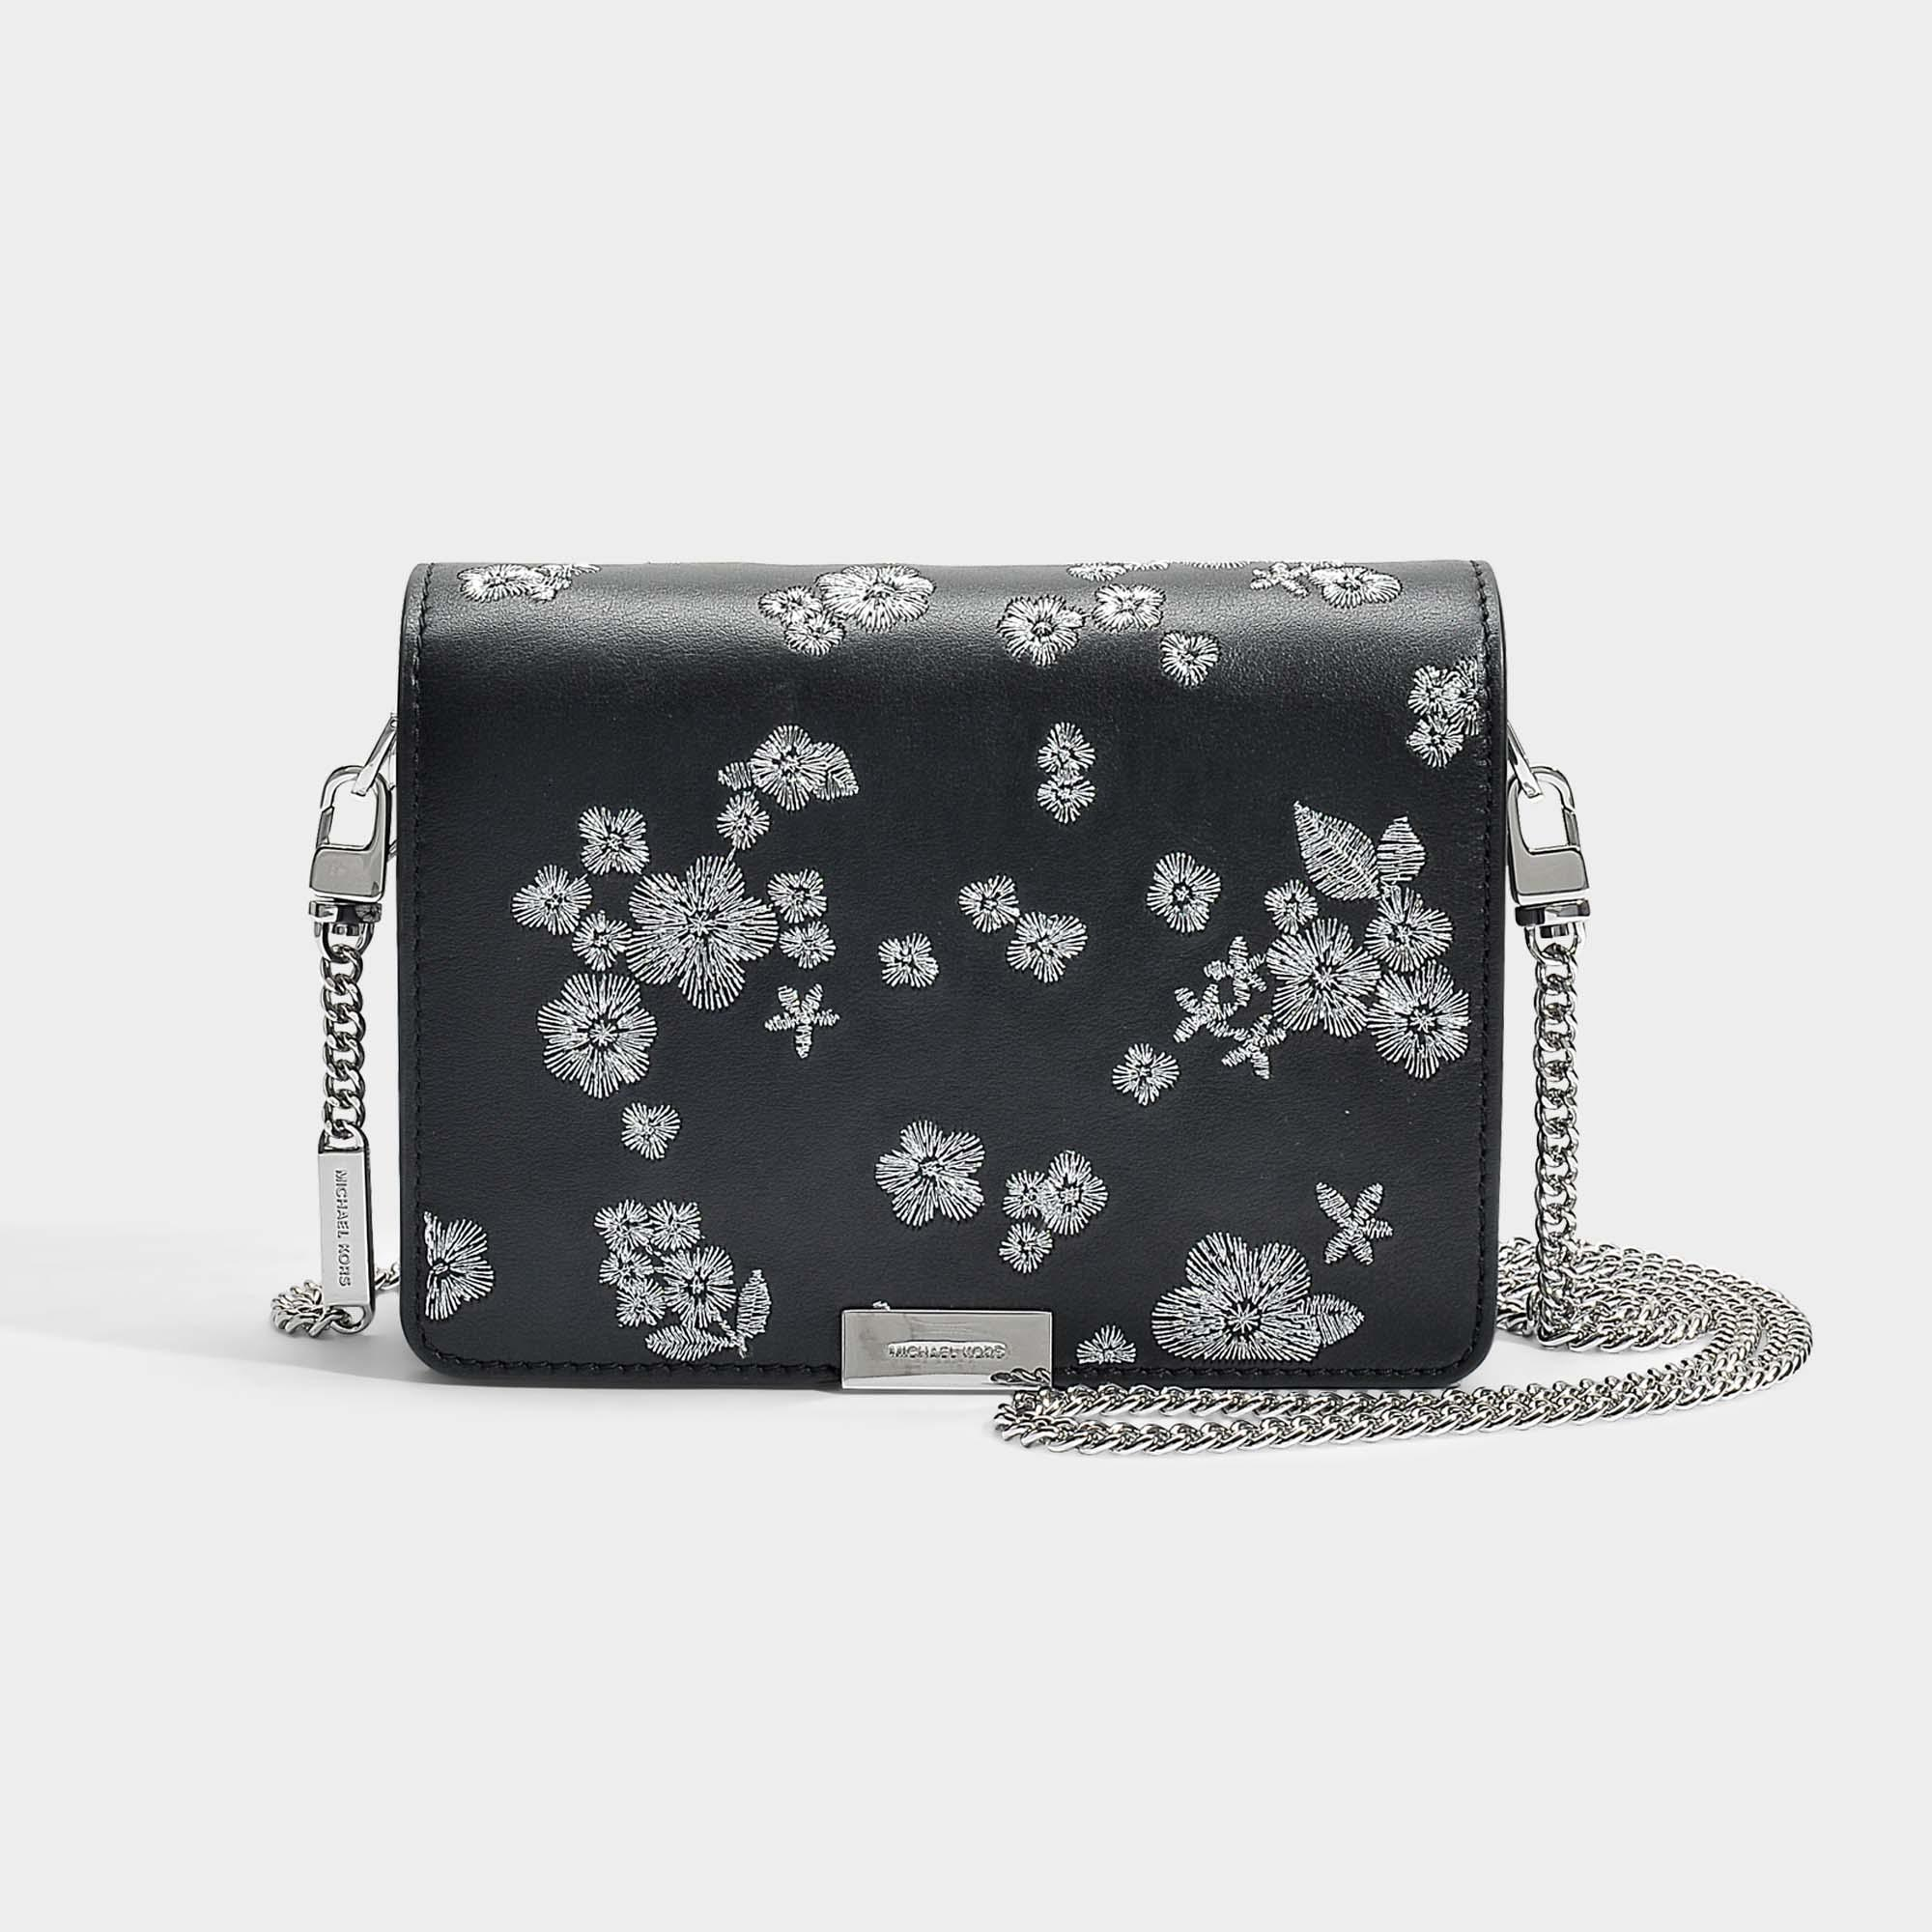 Jade Medium Gusset Clutch in Optic White Flower Embroidered Smooth Vegetable Leather Michael Michael Kors 6ElUjvF6